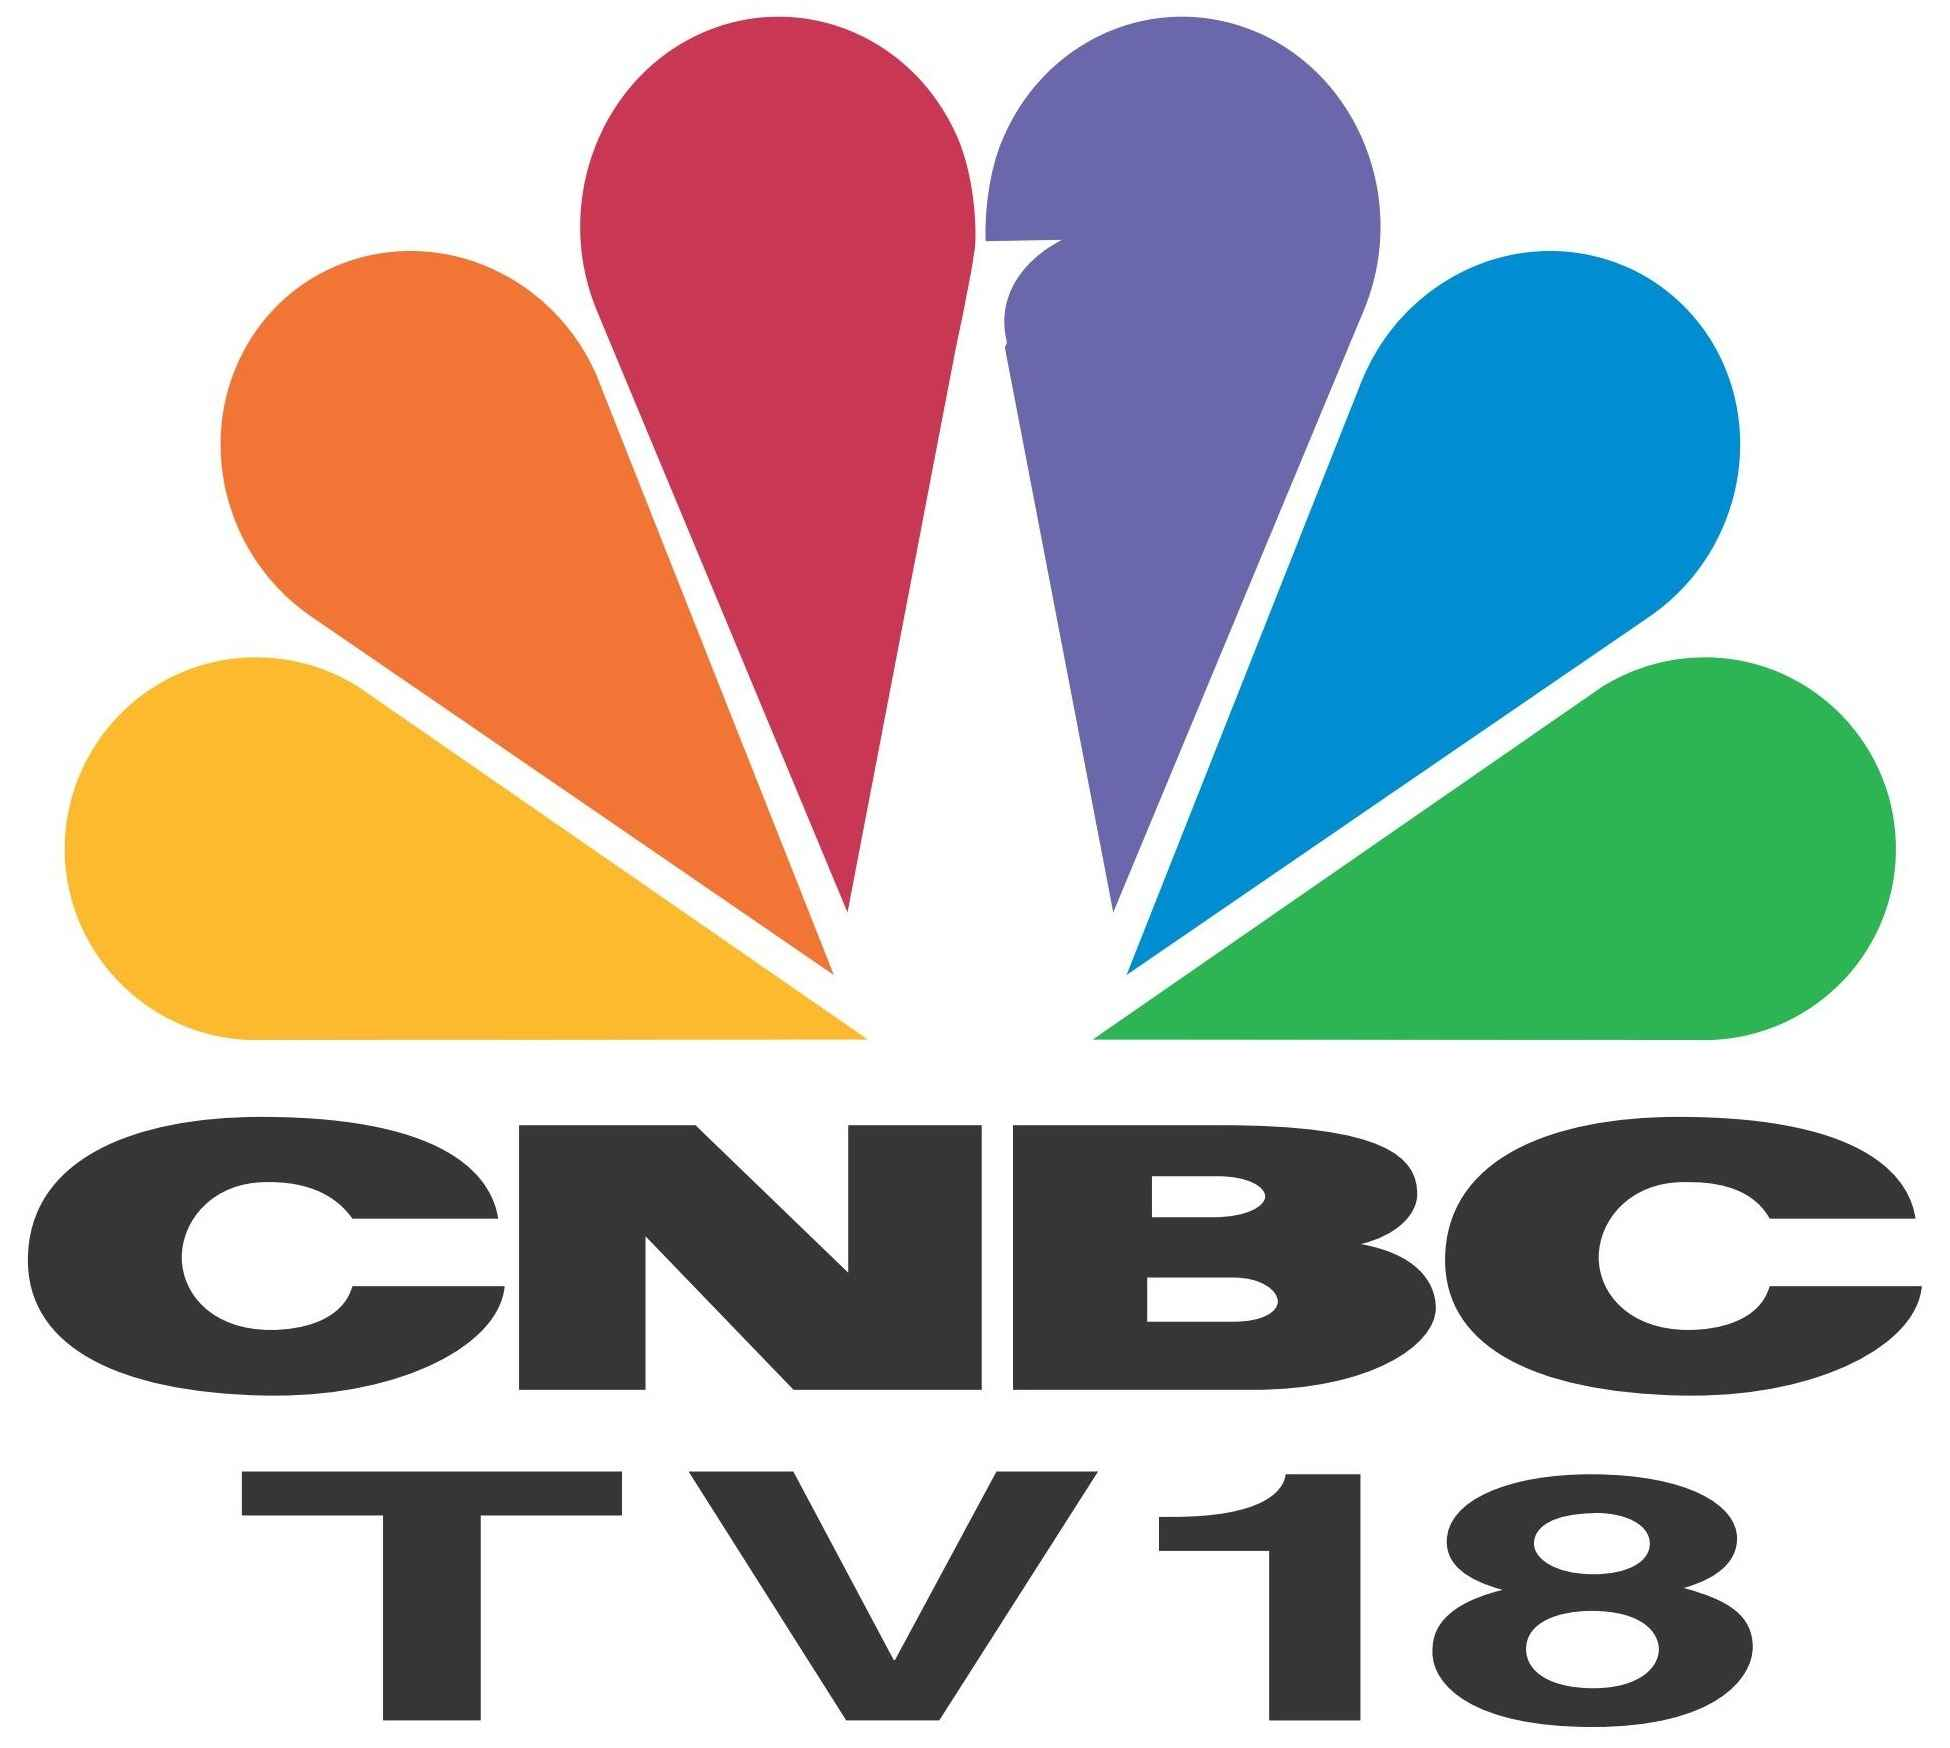 cnbc-tv18-logo